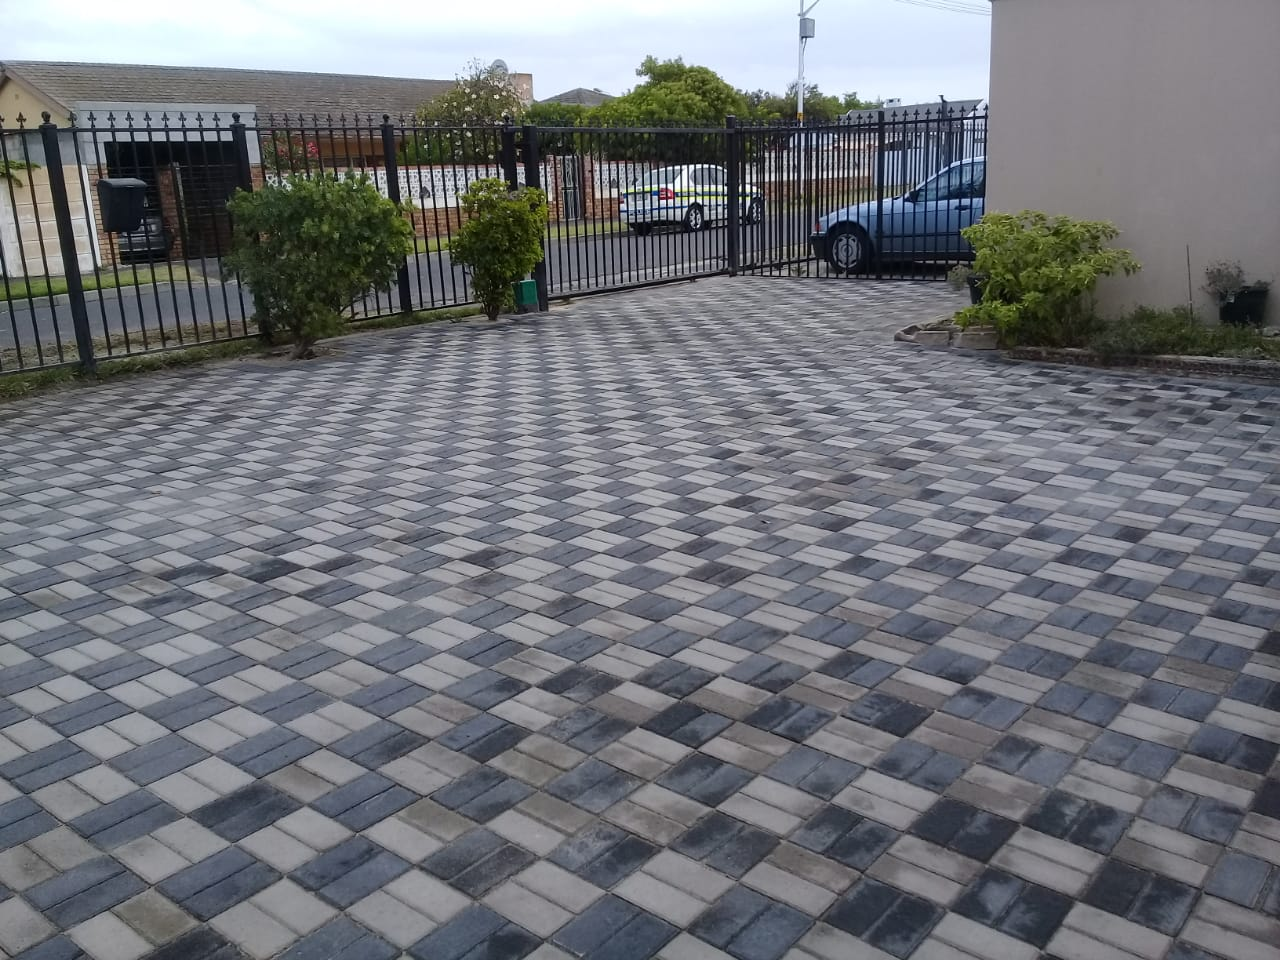 Are looking for paving contractor? Visit us today